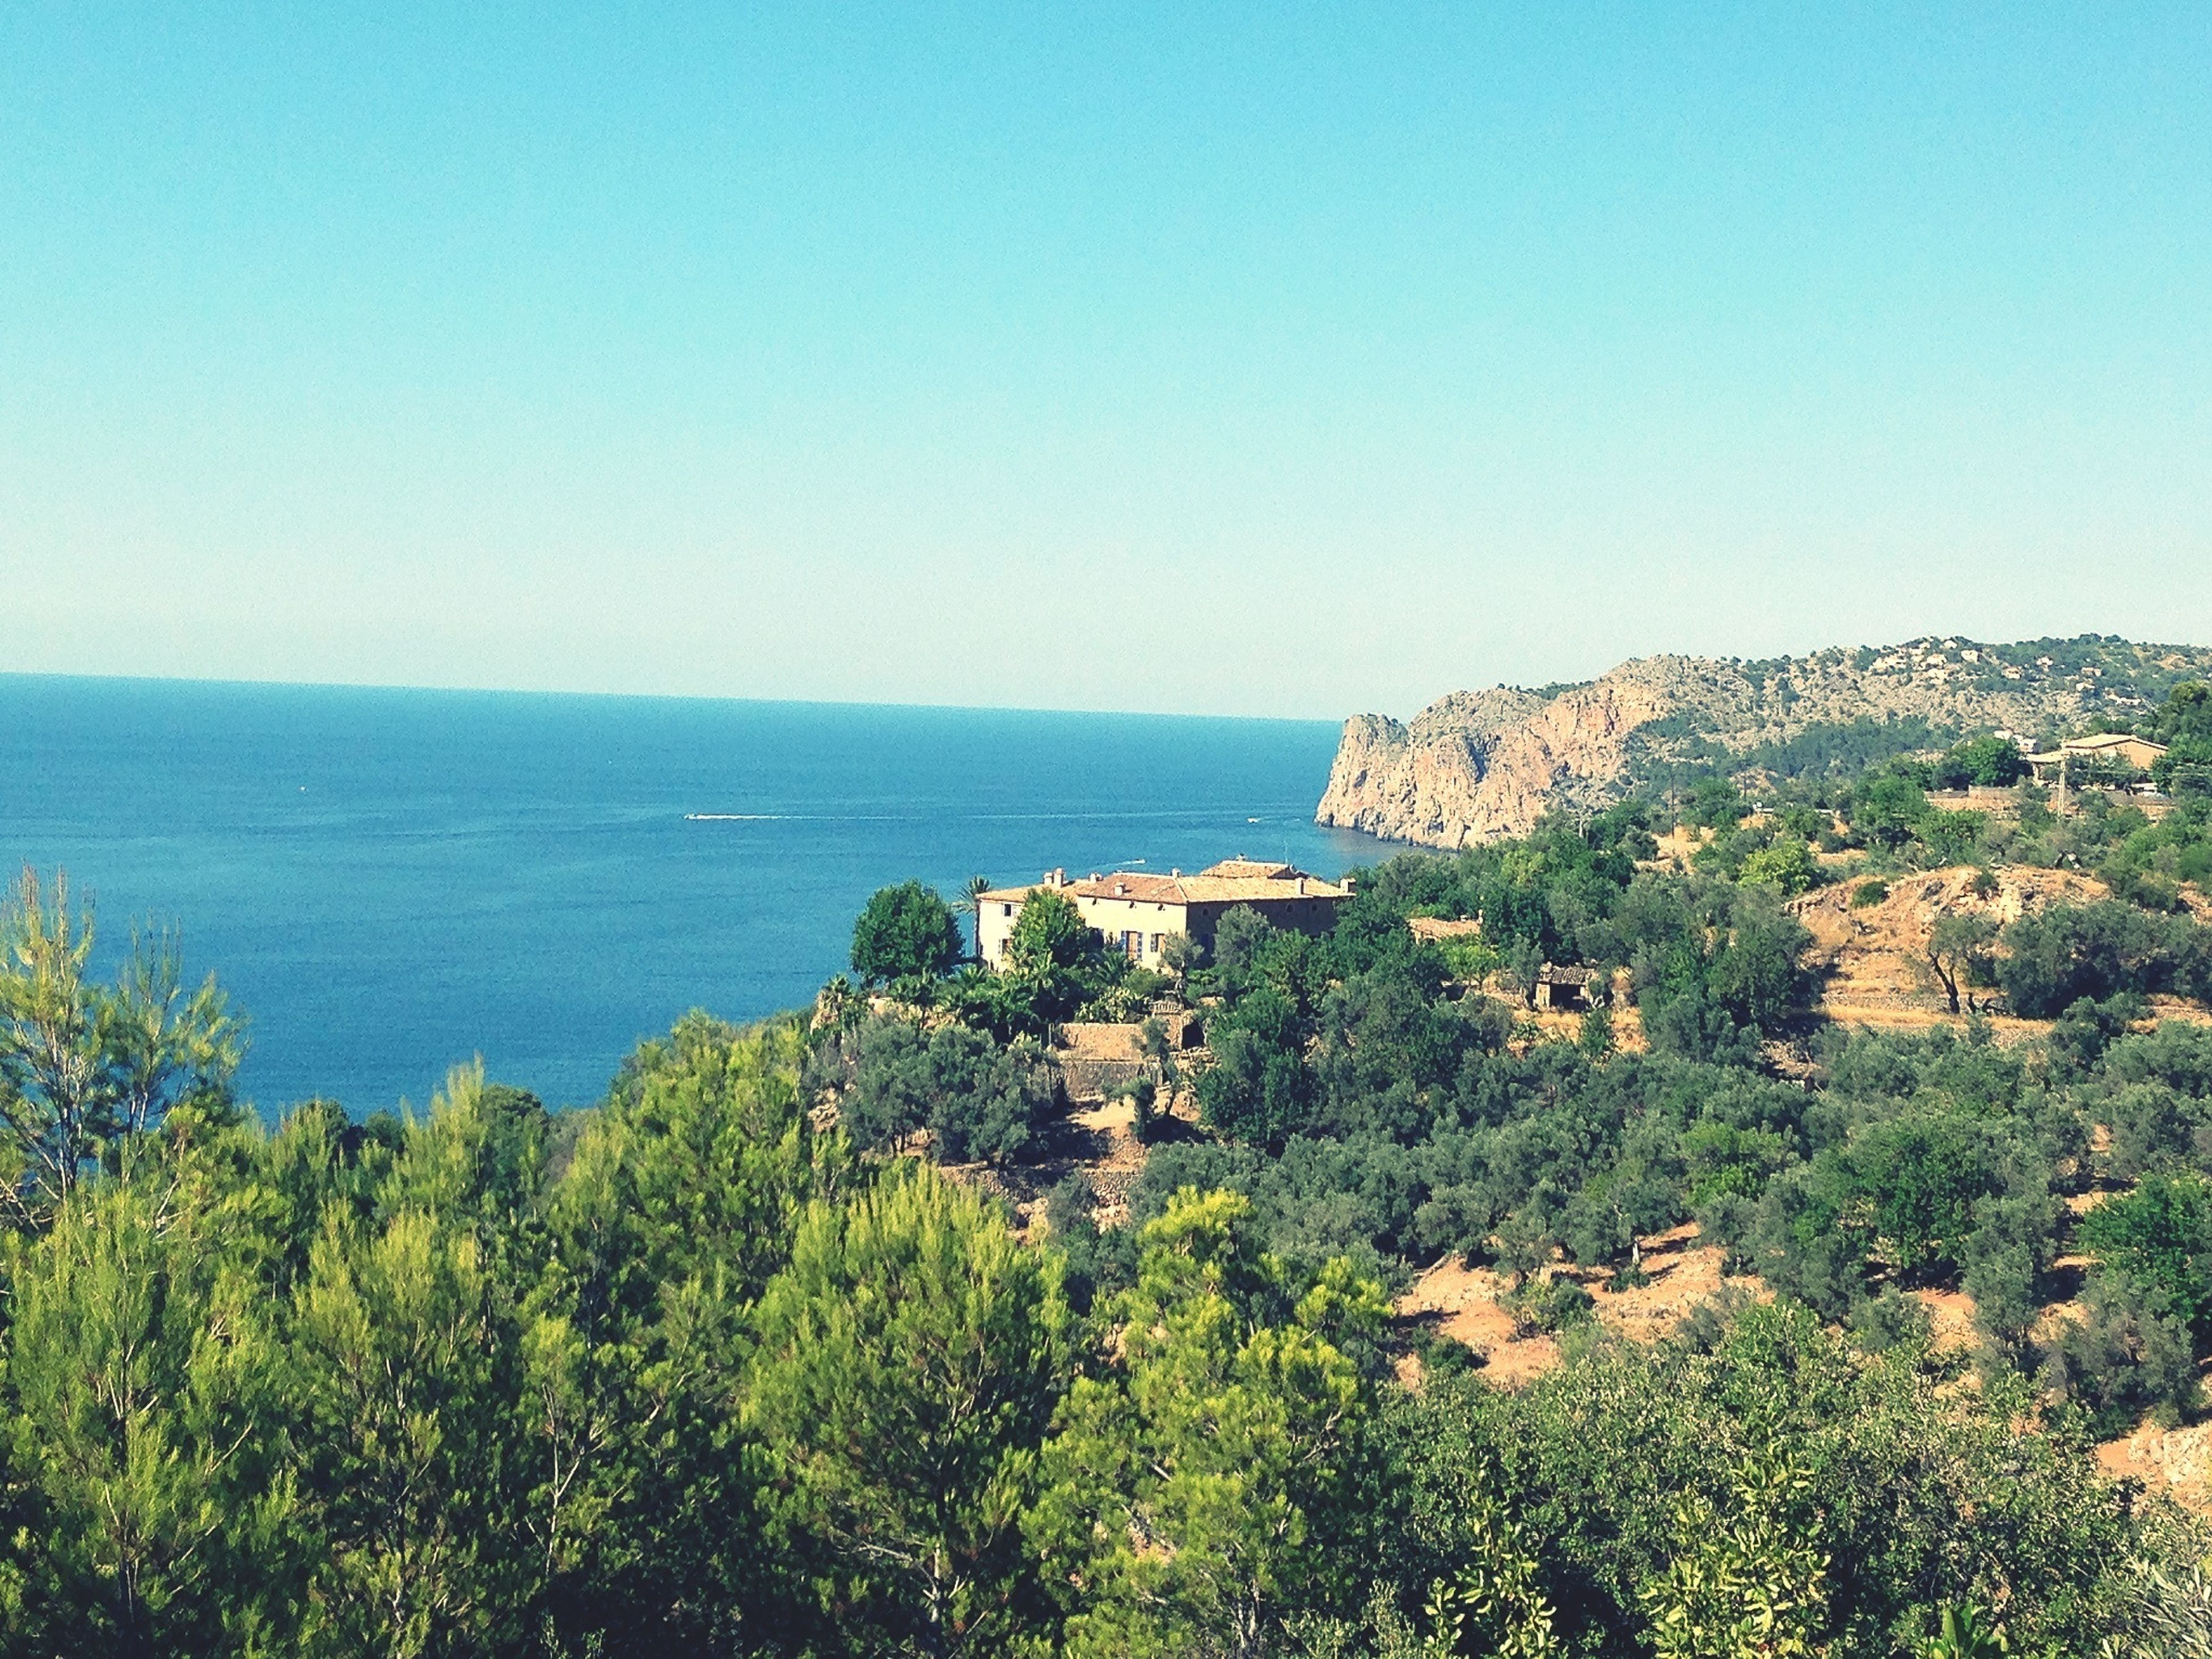 sea, clear sky, horizon over water, copy space, blue, water, tranquil scene, scenics, tranquility, beauty in nature, nature, cliff, high angle view, coastline, tree, idyllic, plant, rock formation, built structure, day